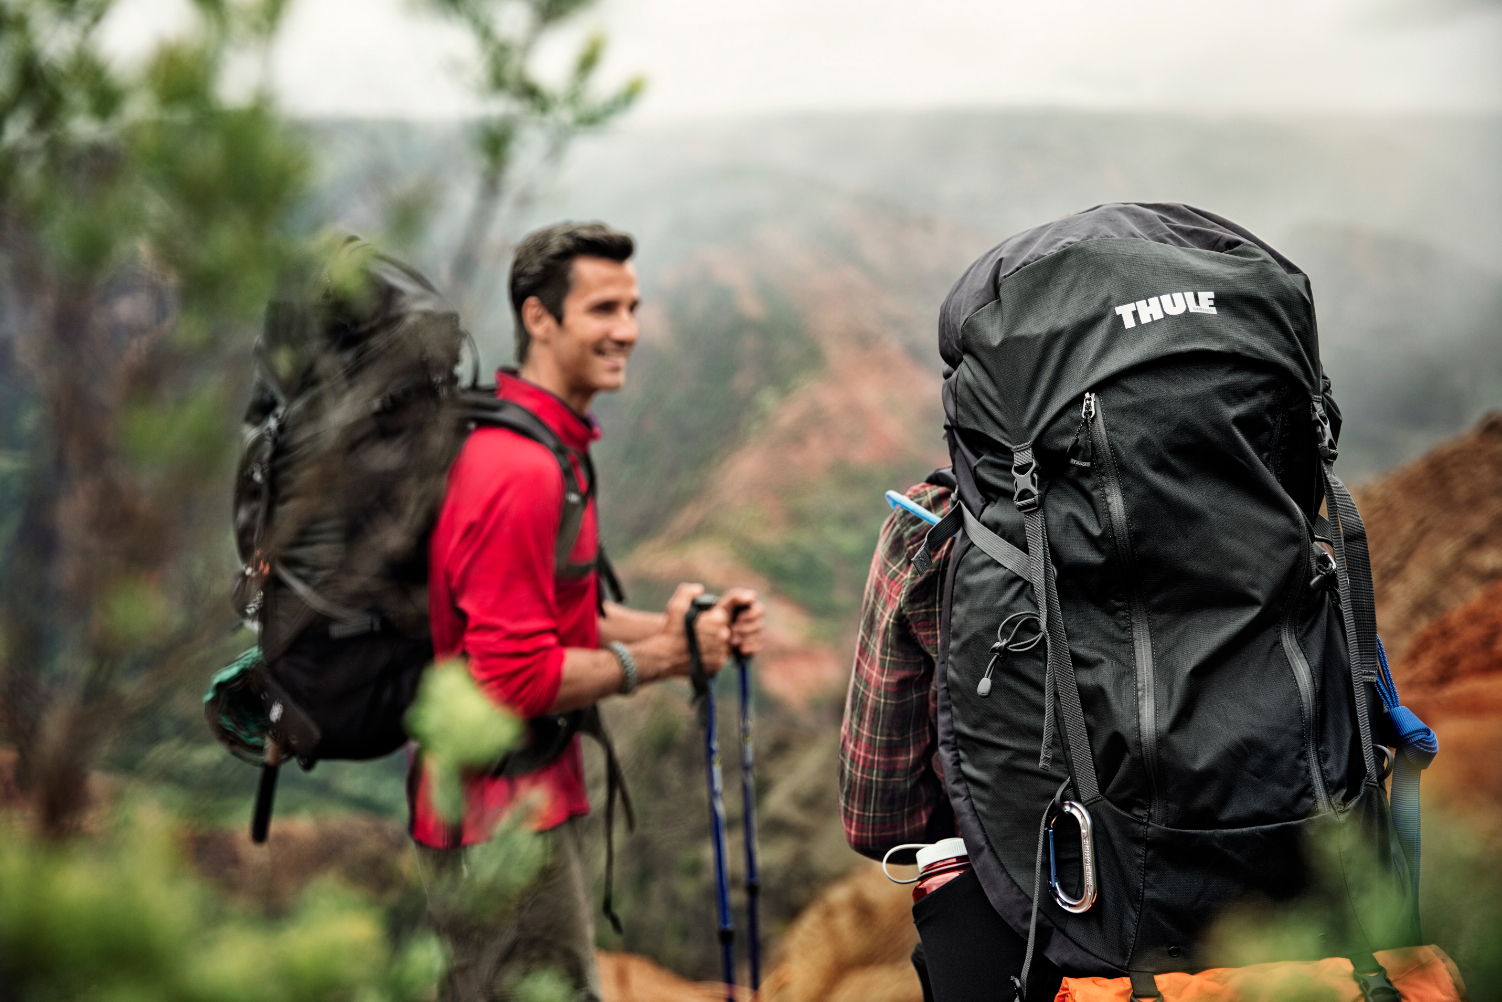 Thule backpacks on sale in Feb 2015